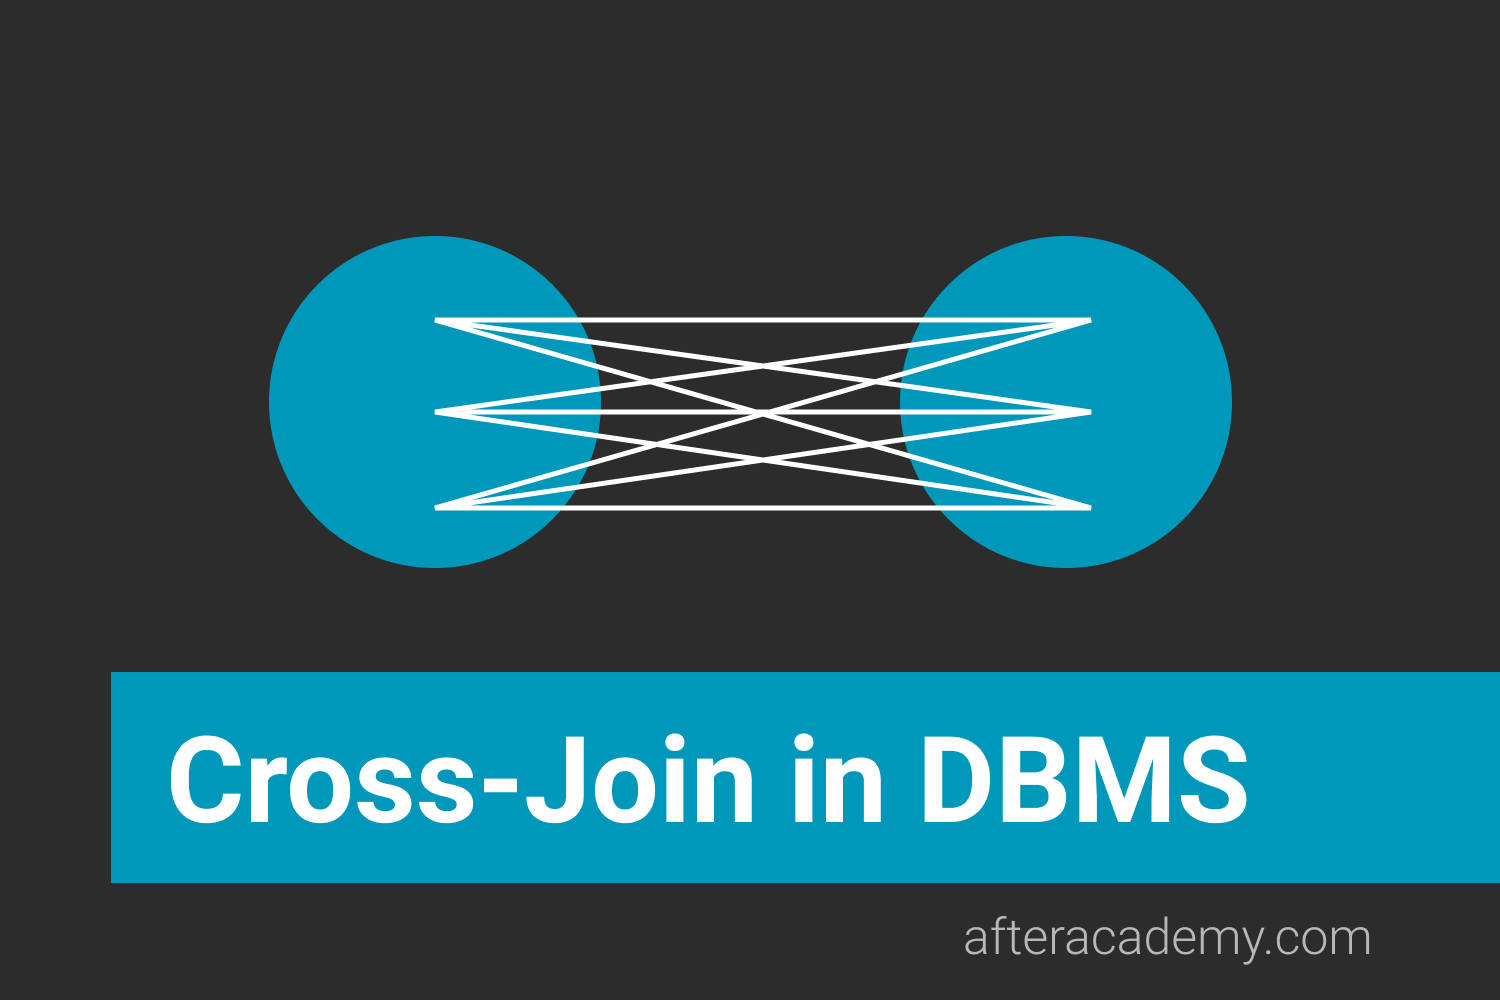 What is Cross-Join in DBMS?